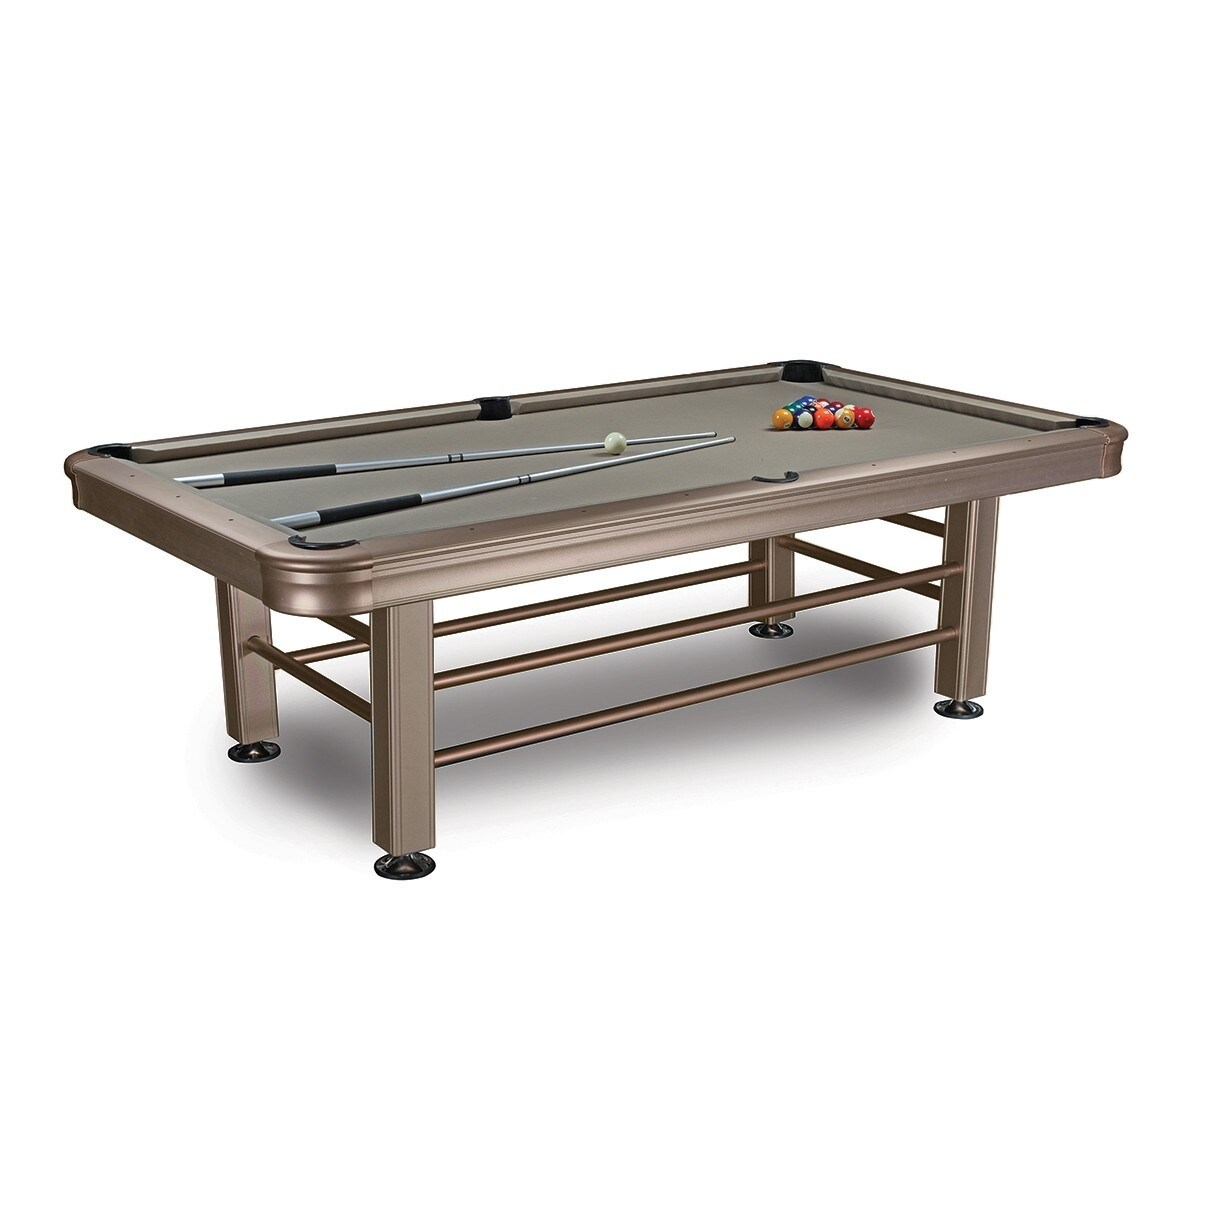 Exceptionnel Shop Imperial 8u0027 Outdoor Pool Table With Accessories / 29 830   Silver    Free Shipping Today   Overstock   18504580